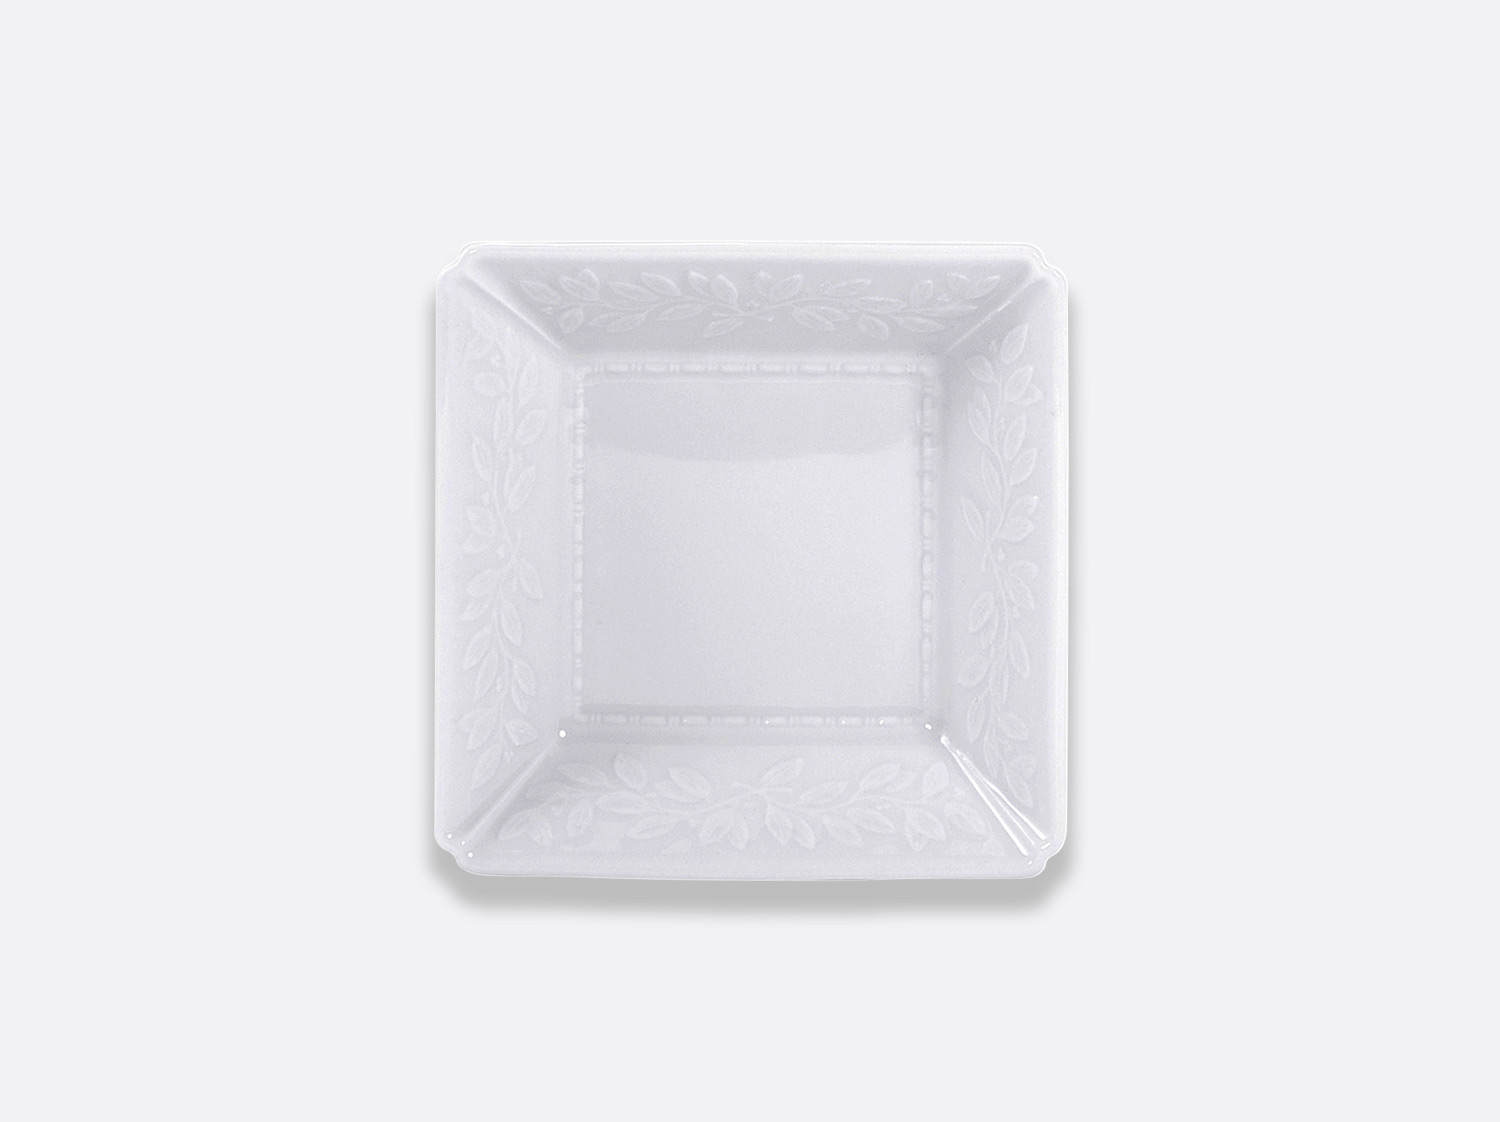 China Square dish 13 cm x 13 cm of the collection Louvre | Bernardaud